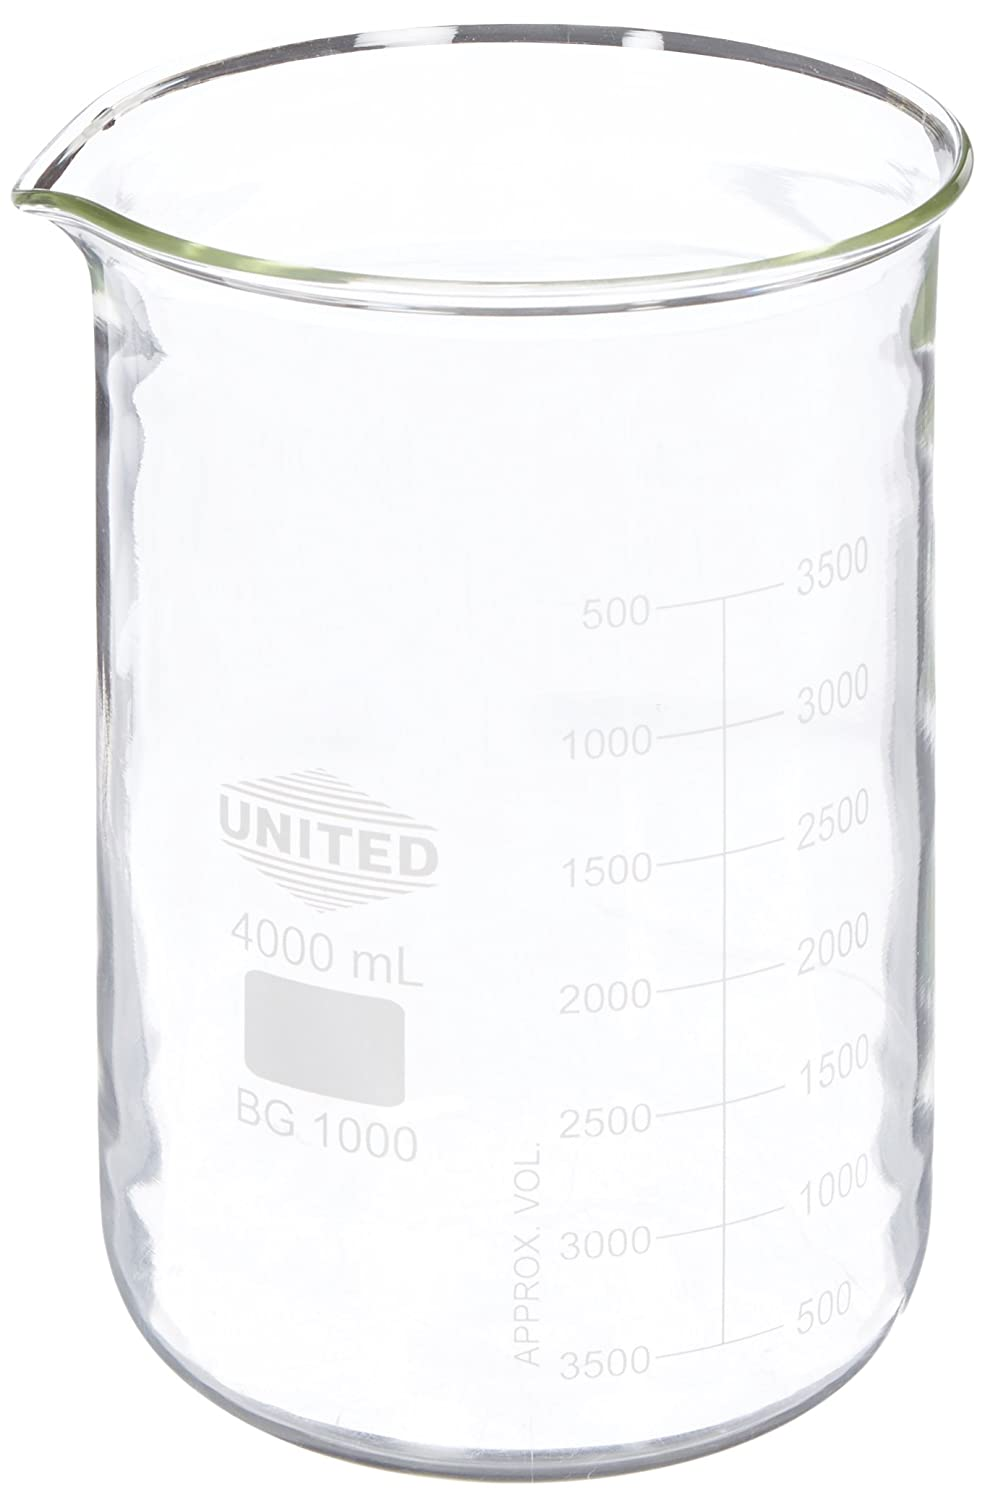 United Scientific BG1000-4000 Borosilicate Glass Low Form Beaker, 4000ml Capacity United Scientific Supplies